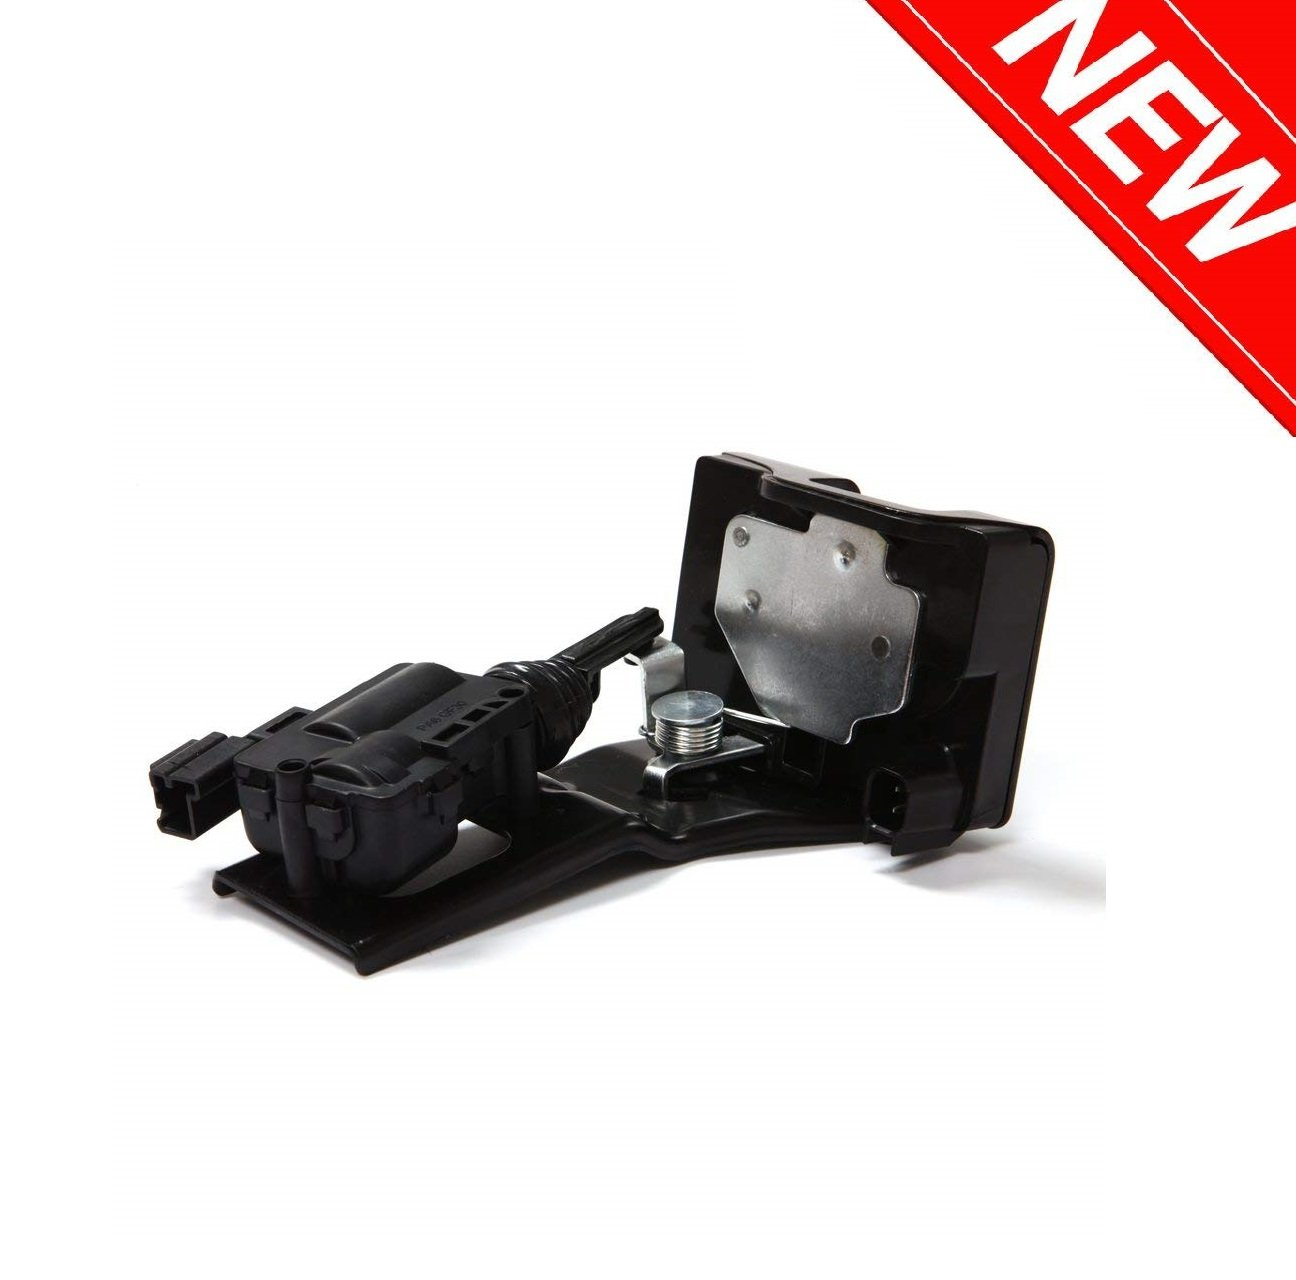 Integrated Rear Hatch Lift Gate Liftgate Tailgate Door Latch Lock Actuator for Ford Escape 2009-2012 Mercury Mariner 2009-2011 Replace# 9L8Z-7843150-B and 937-663 Mazda Tribut 2008-2011